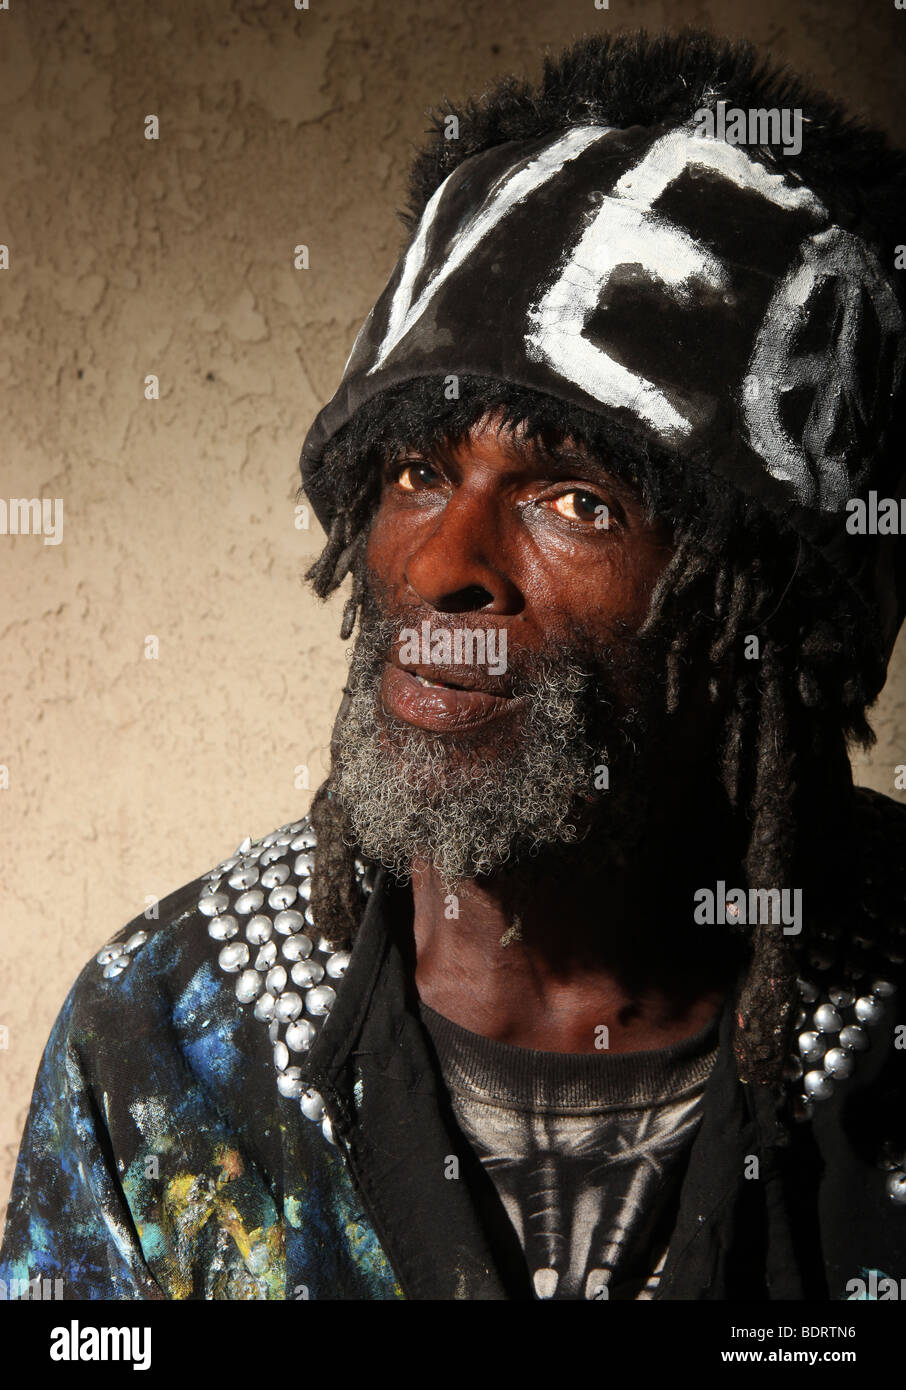 Stark Portrait of a Transient Homeless African American Man With Dredlocks - Stock Image